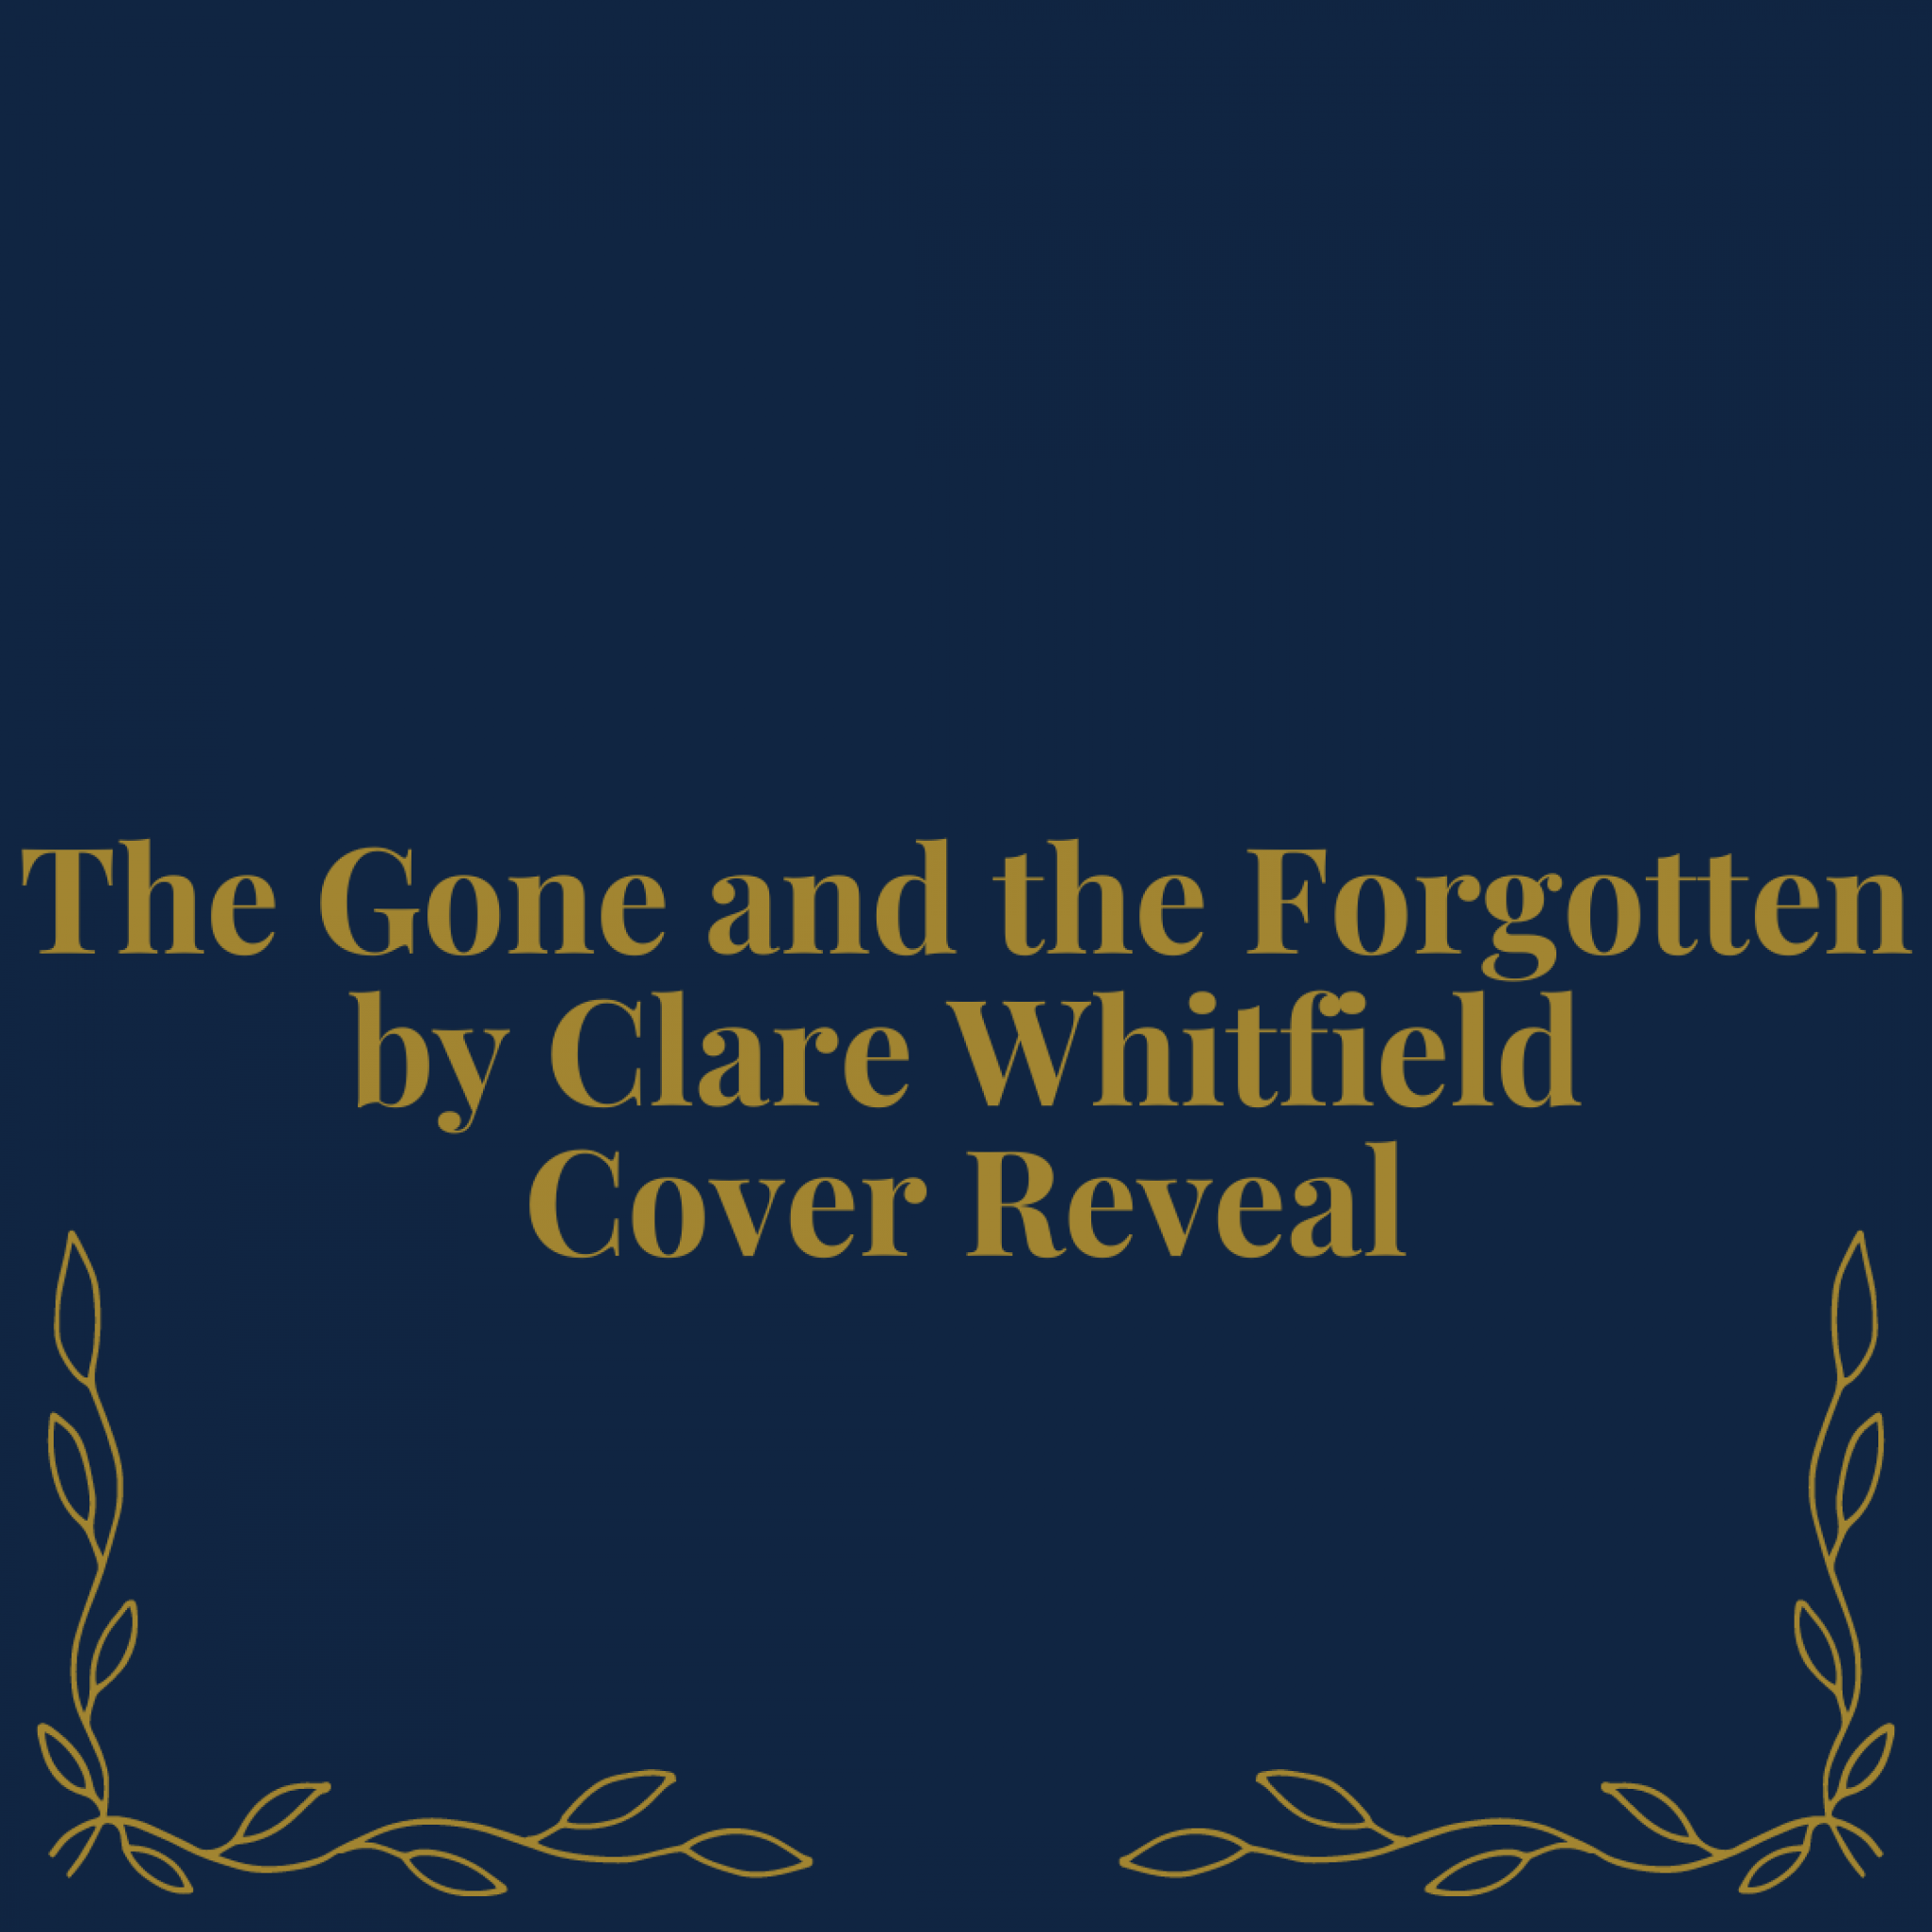 The Gone and the Forgotten by Clare Whitfield - Cover Reveal